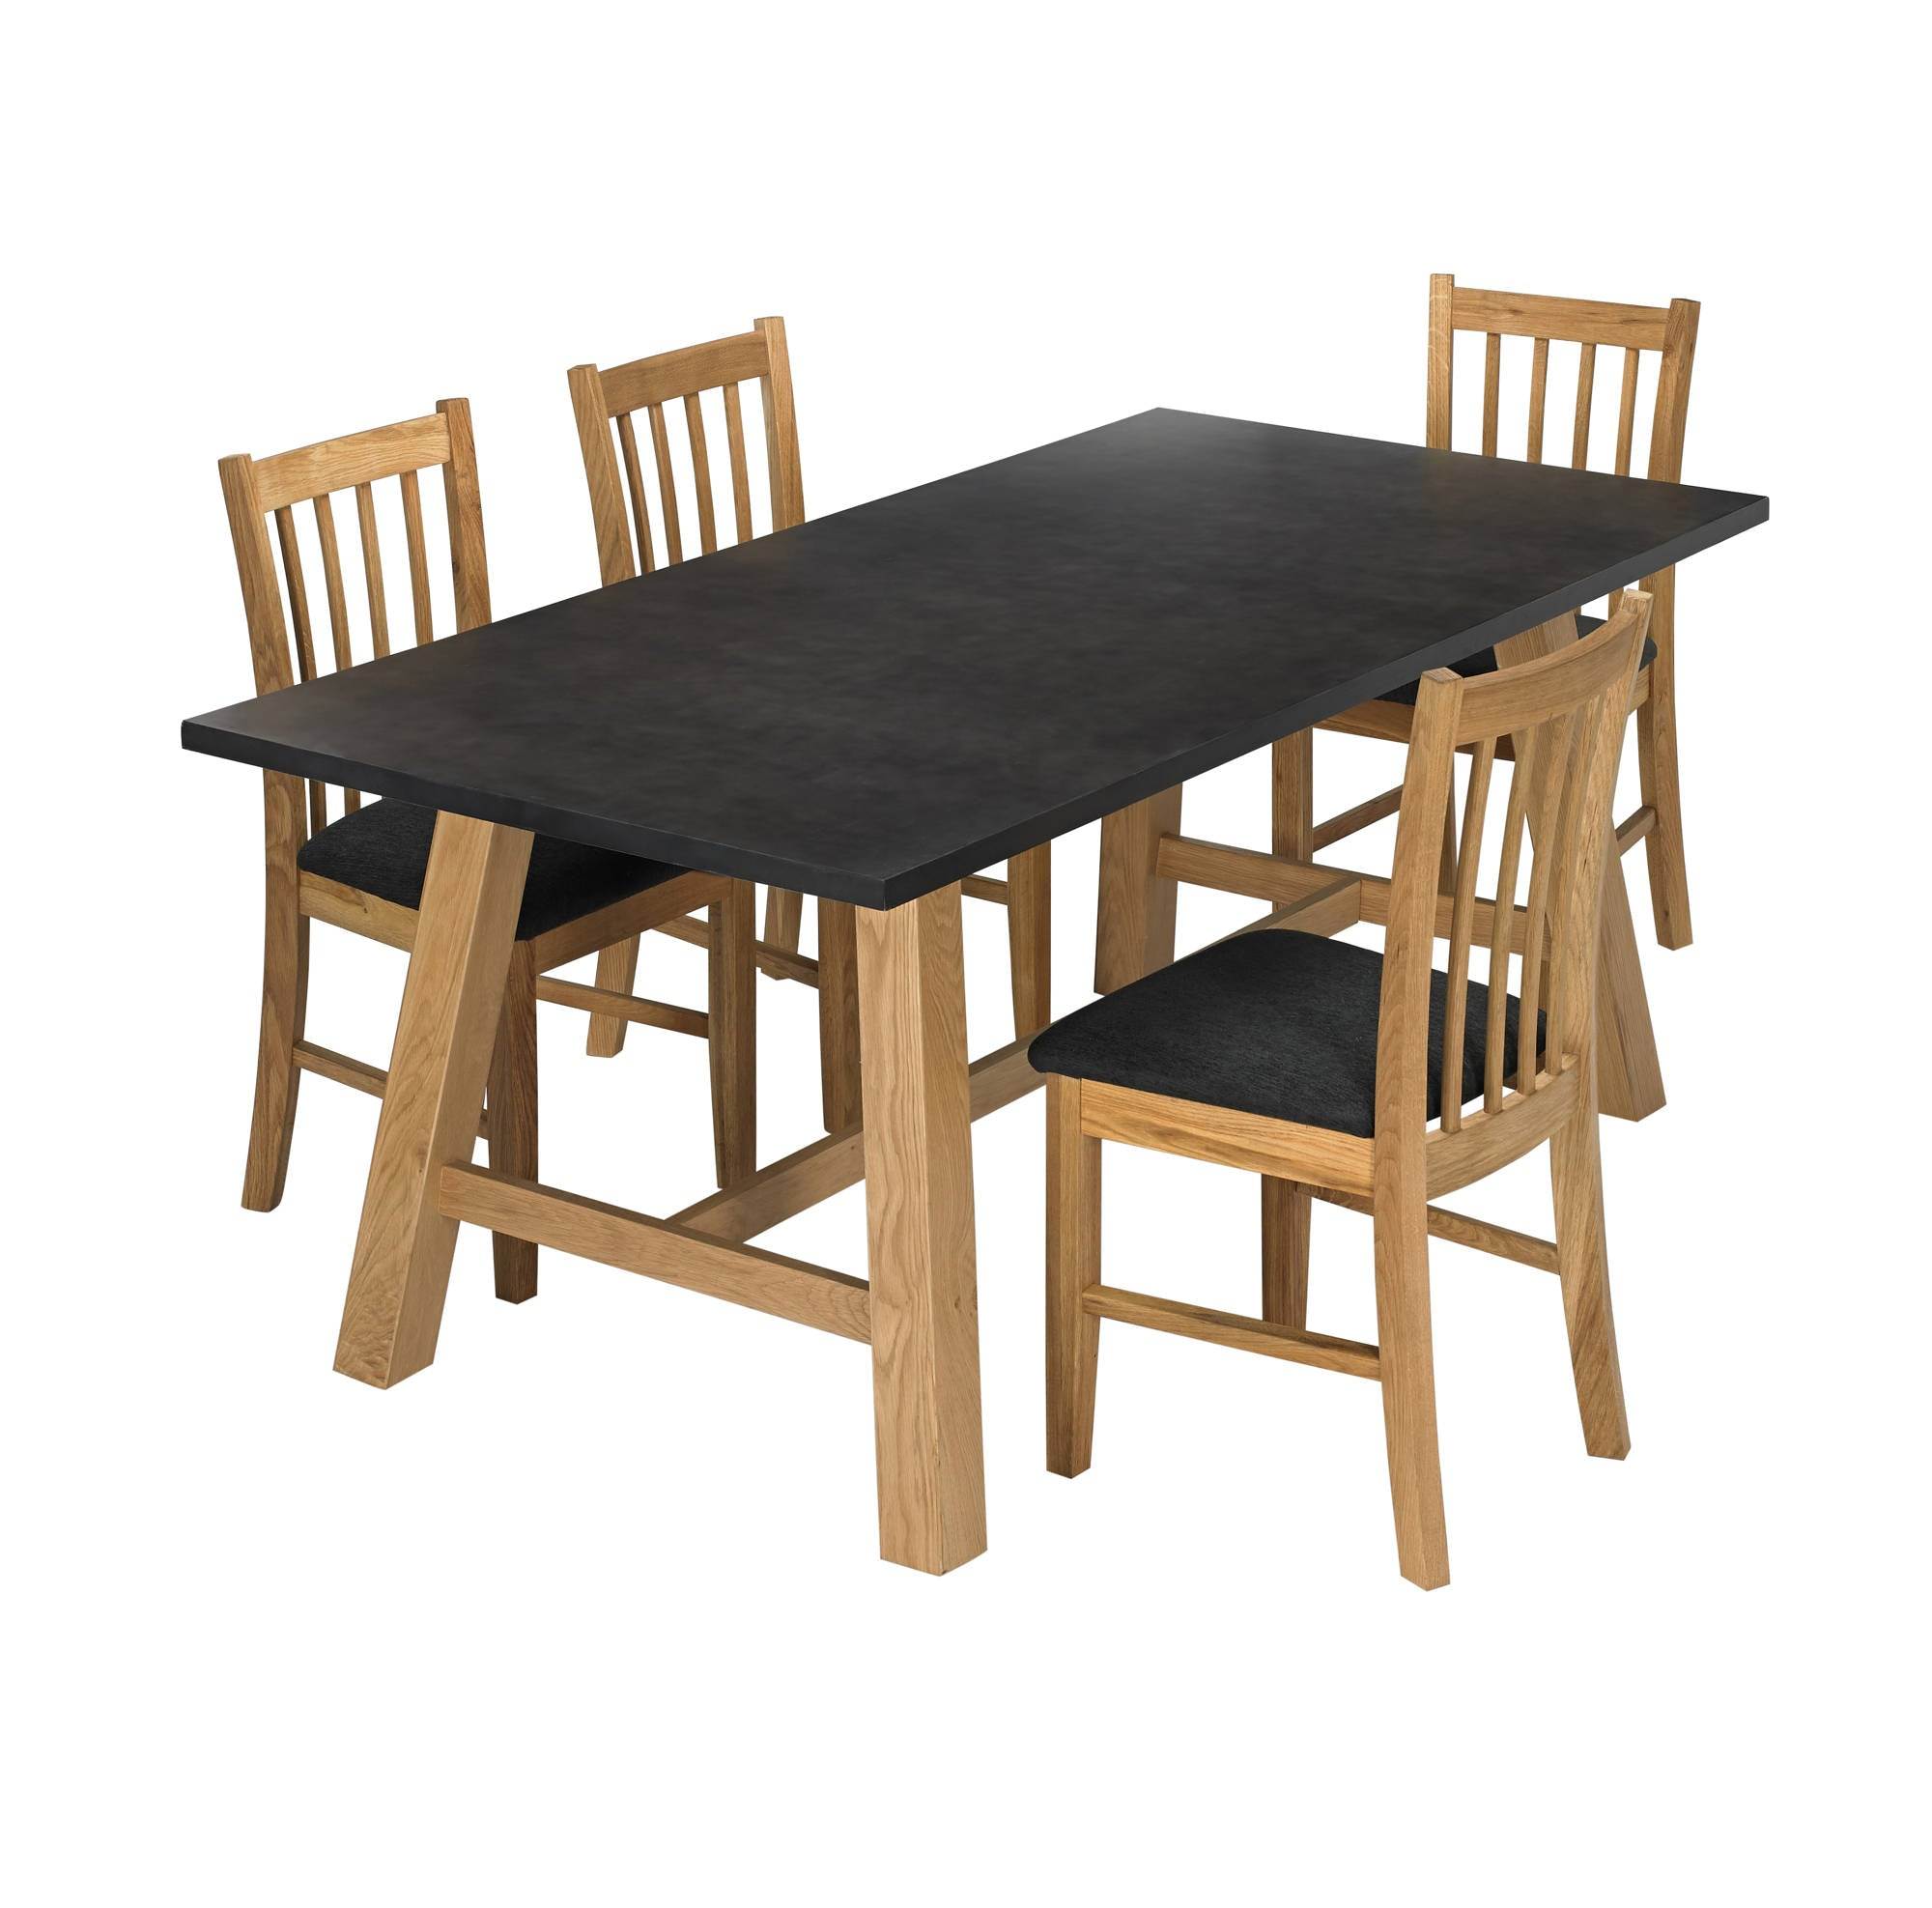 Kilby Large Dining Table - Ezzo